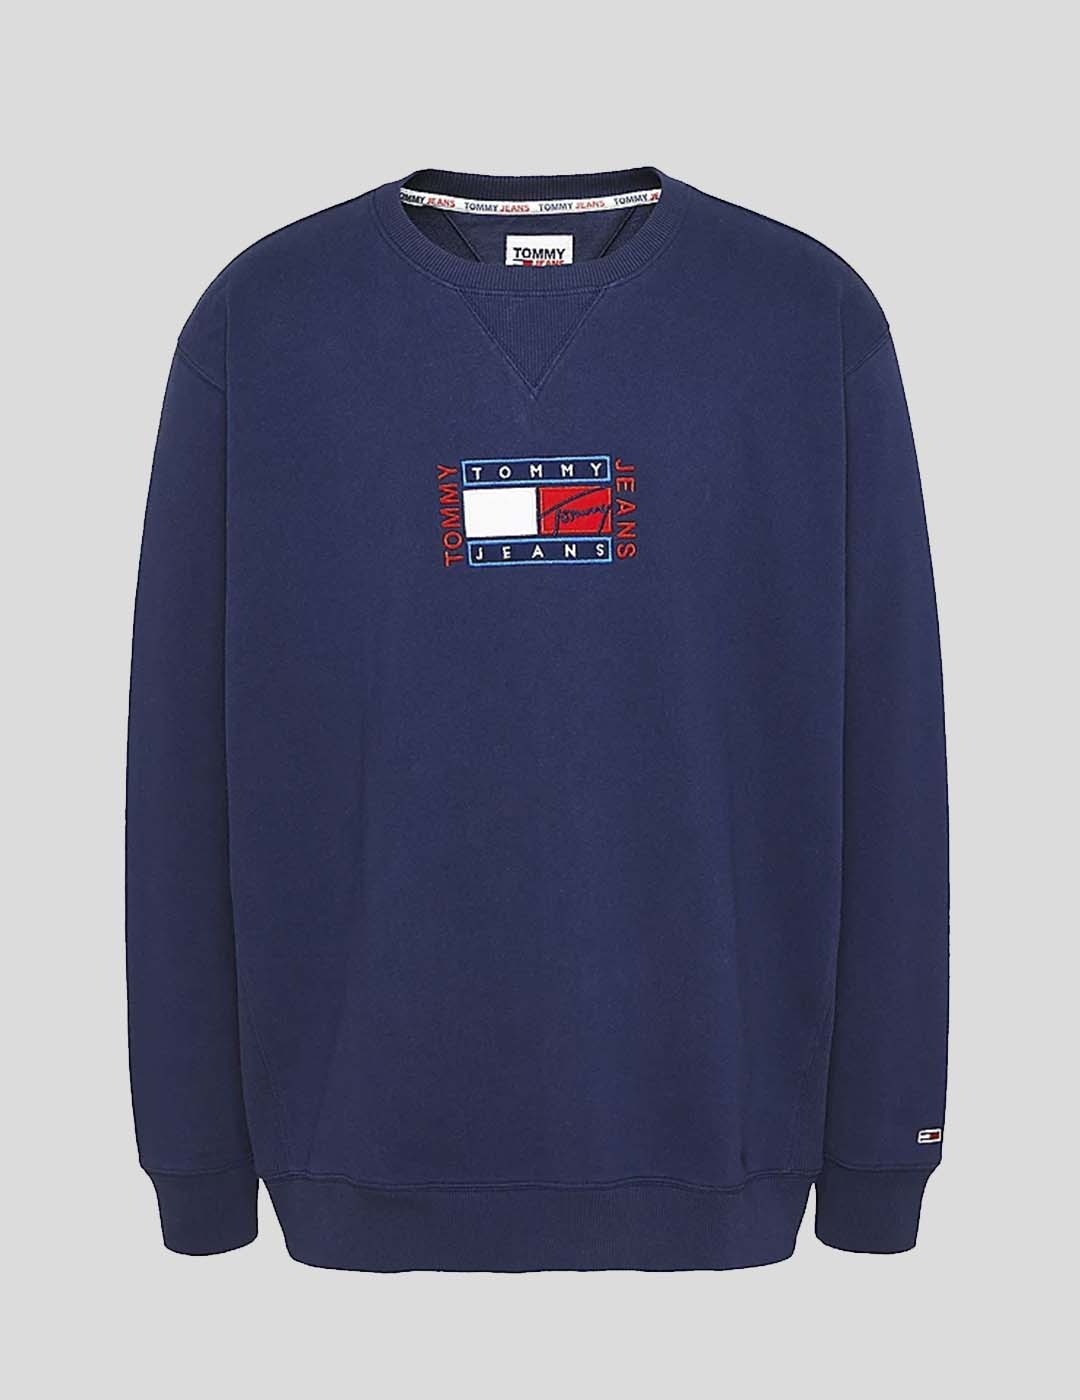 SUDADERA TOMMY JEANS TIMELESS TOMMY CREW TWINLIGHT NAVY